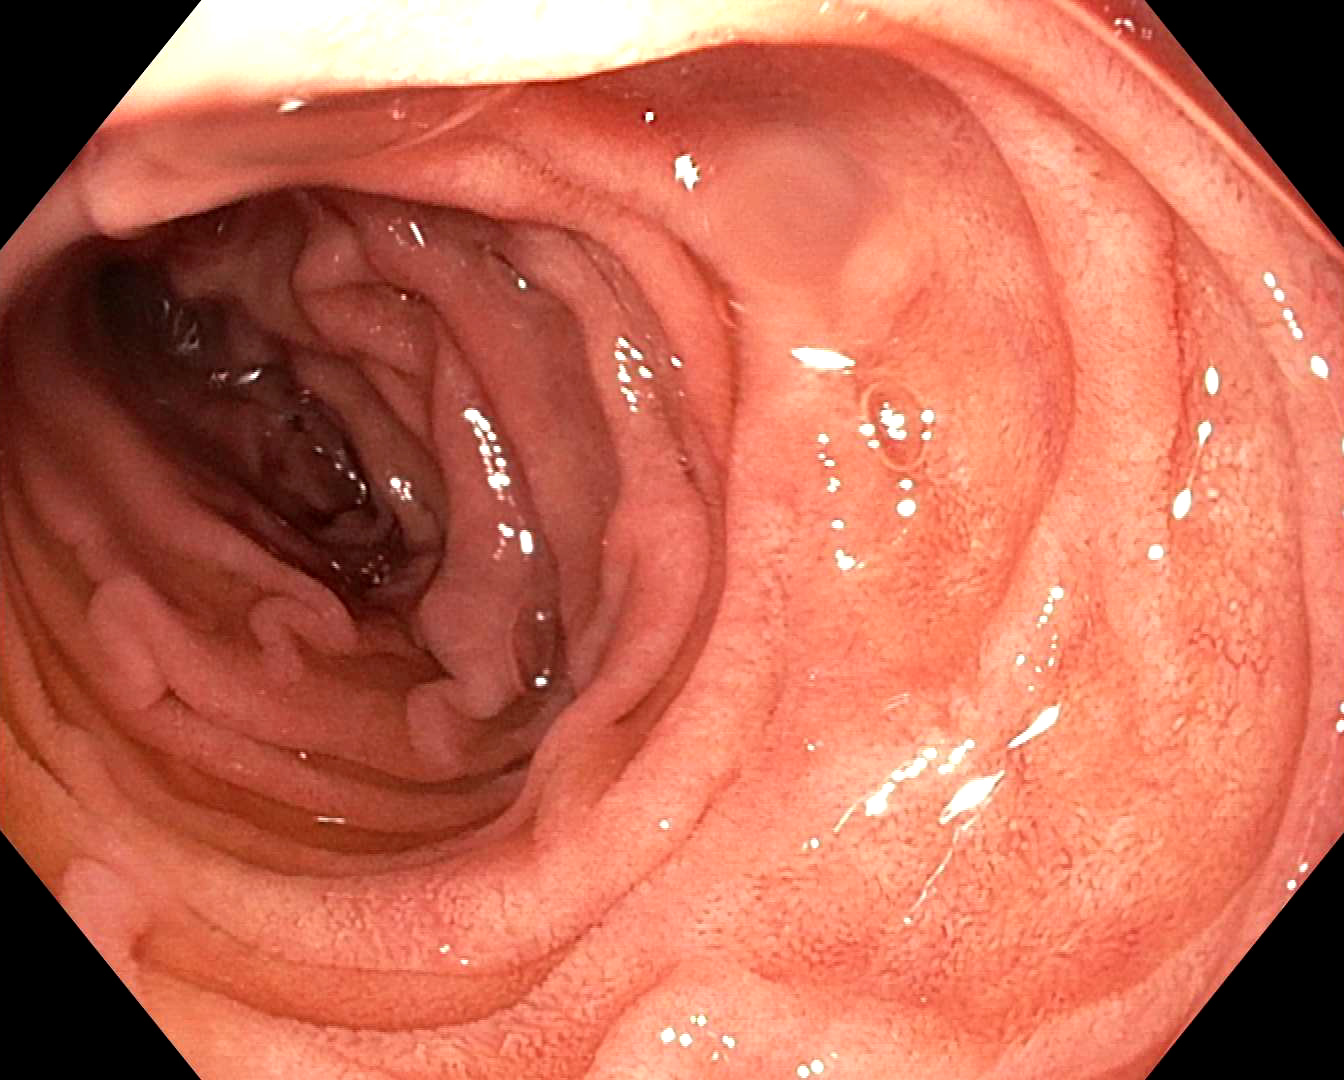 Endoscopic view of 2nd portion of duodenum